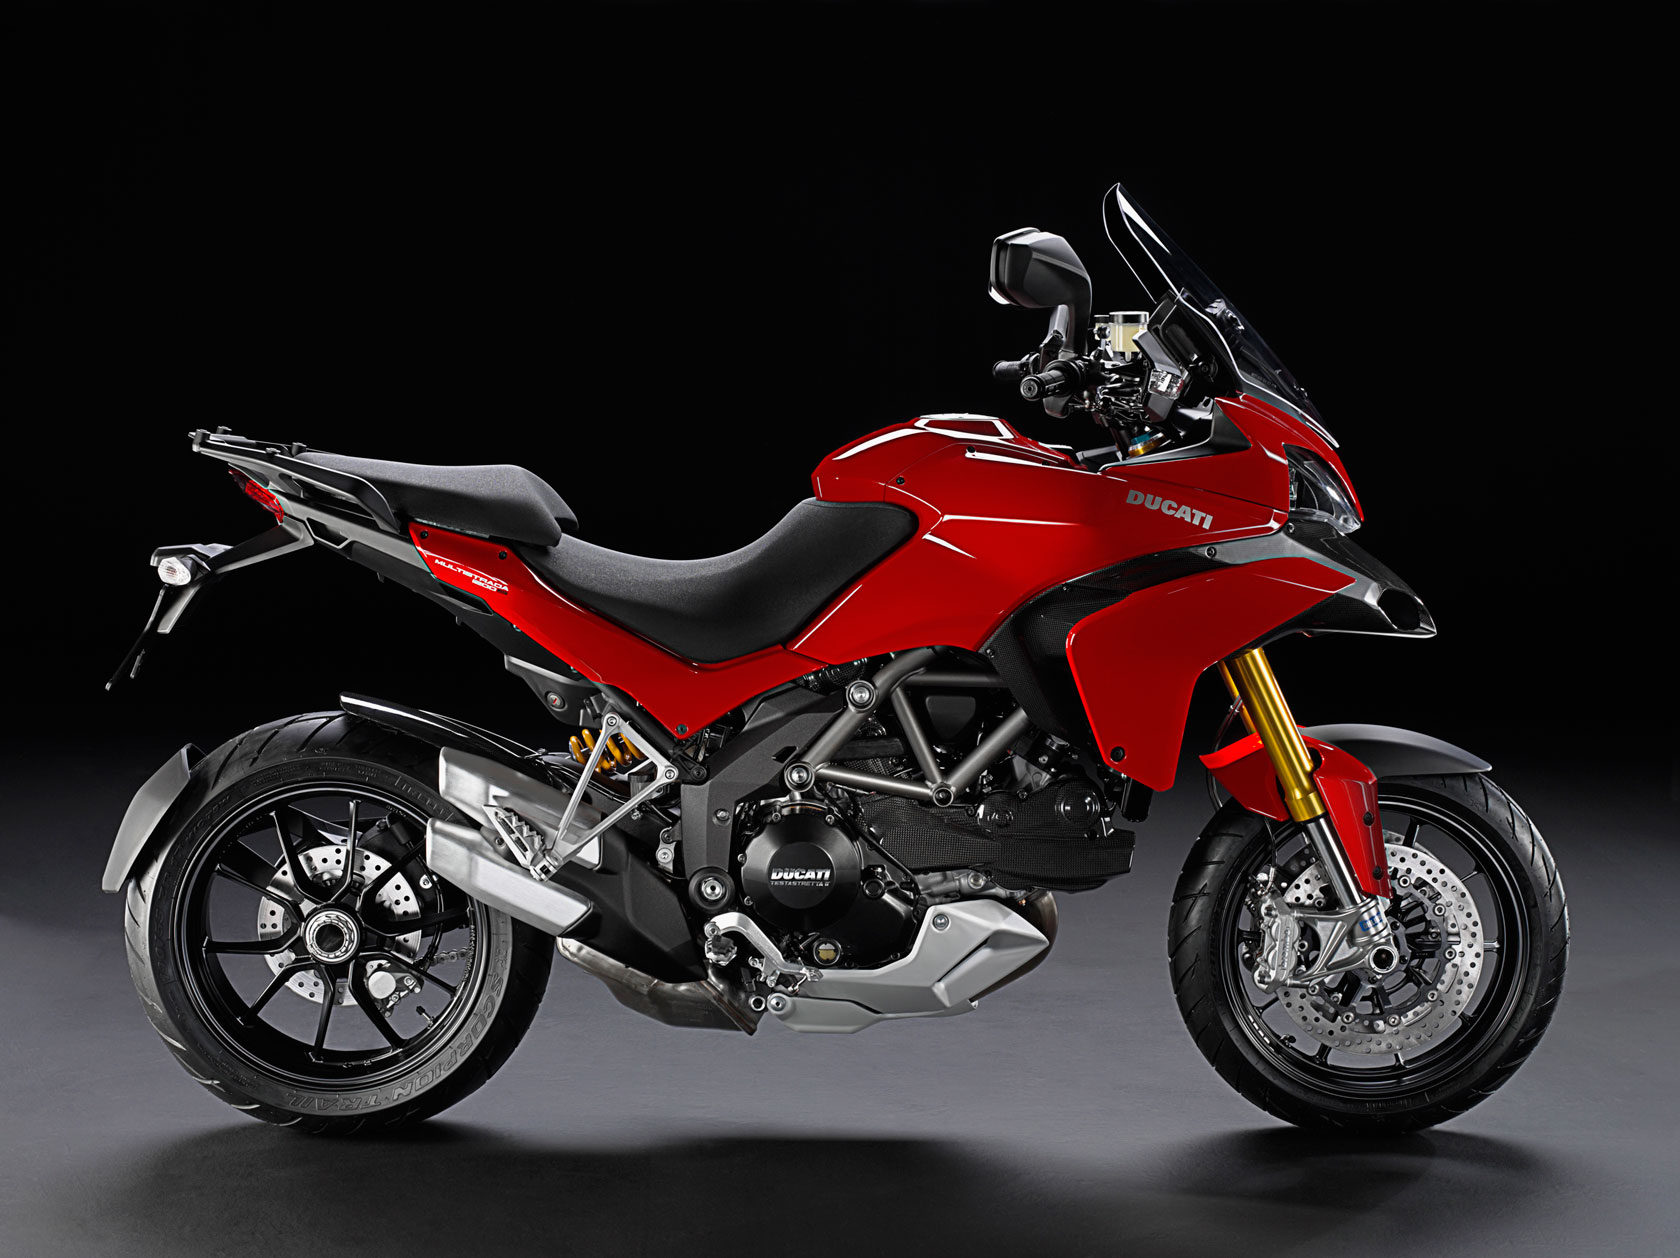 2014 BMW R1200GS Adventure: the rivals